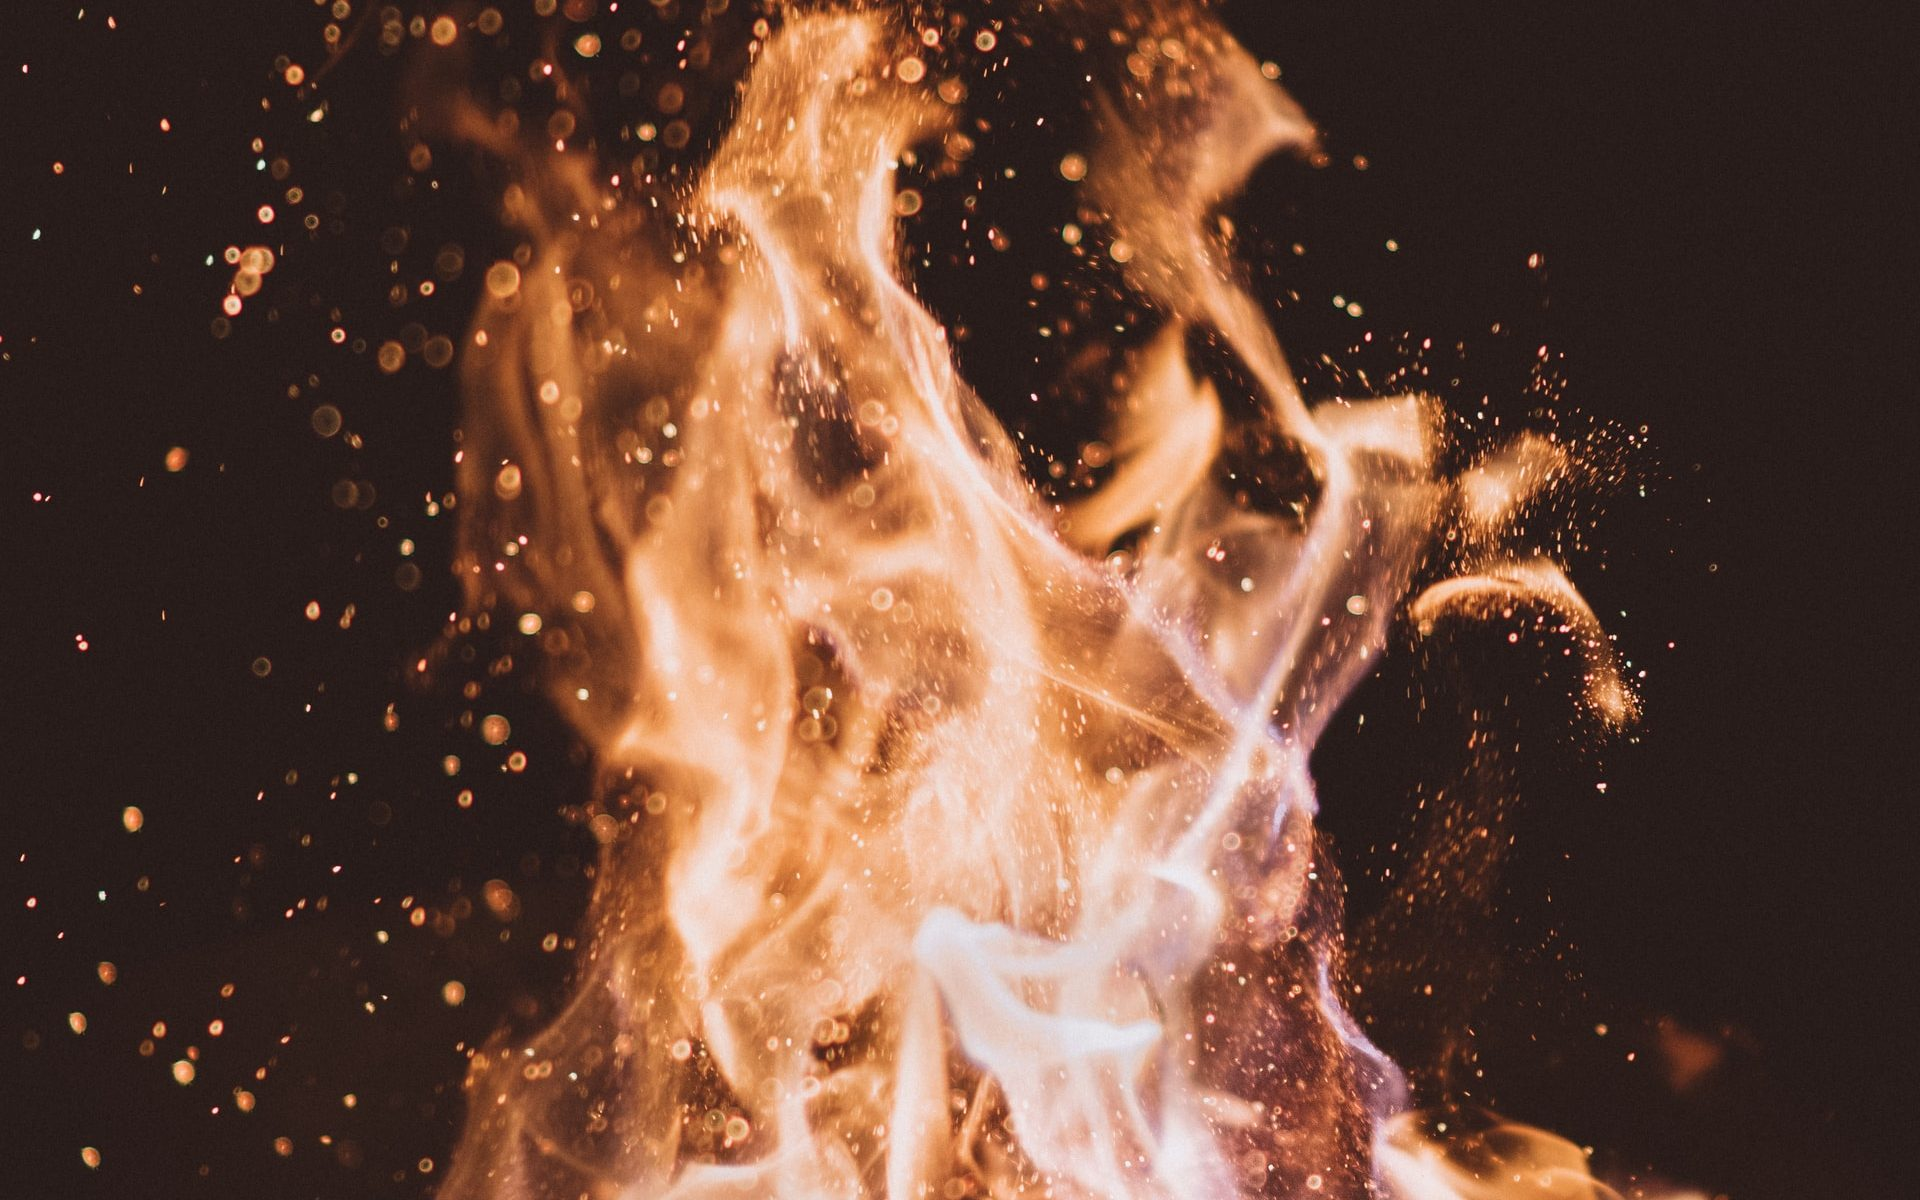 The Pentecostal movement emphasizes the power of the Holy Spirit